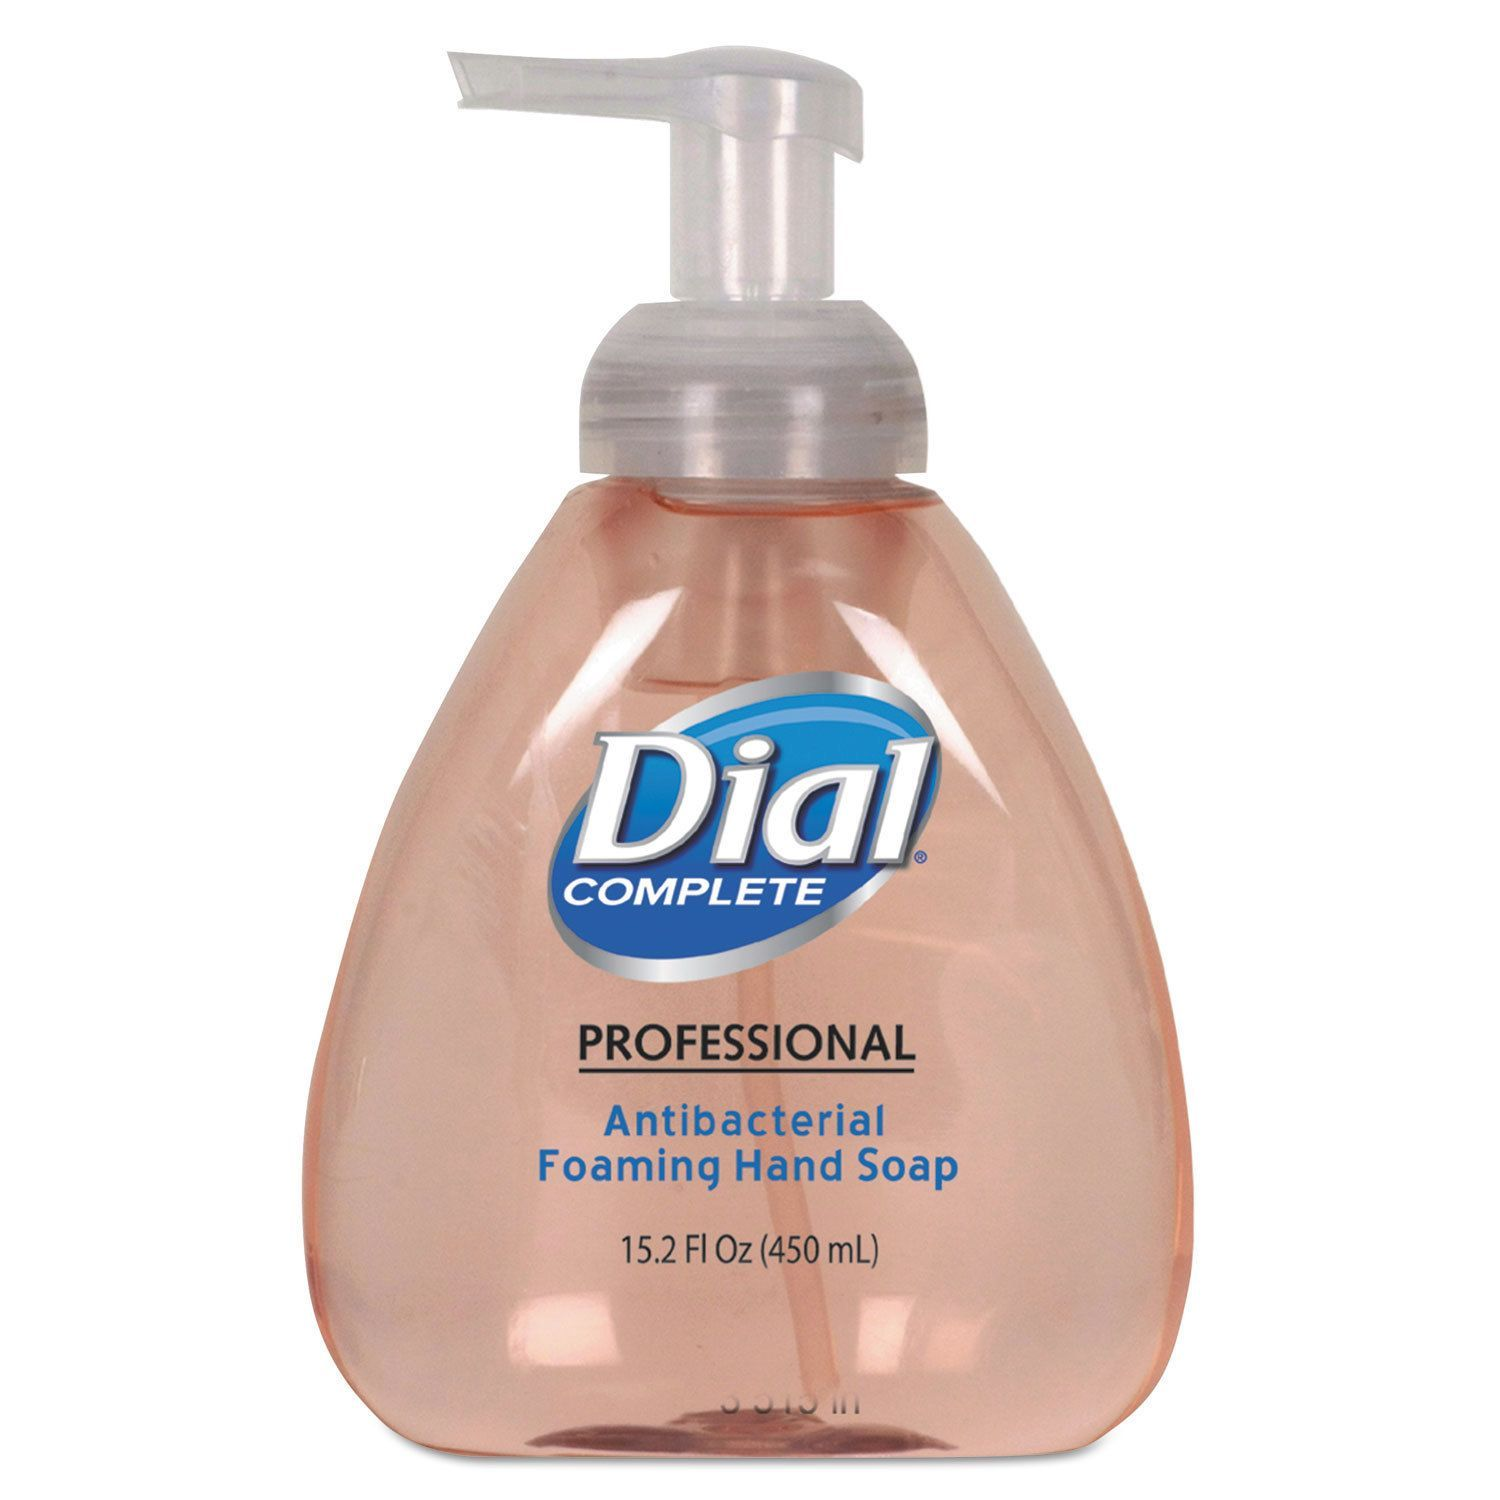 Dial Professional Antimicrobial Foaming Hand Soap Original Scent